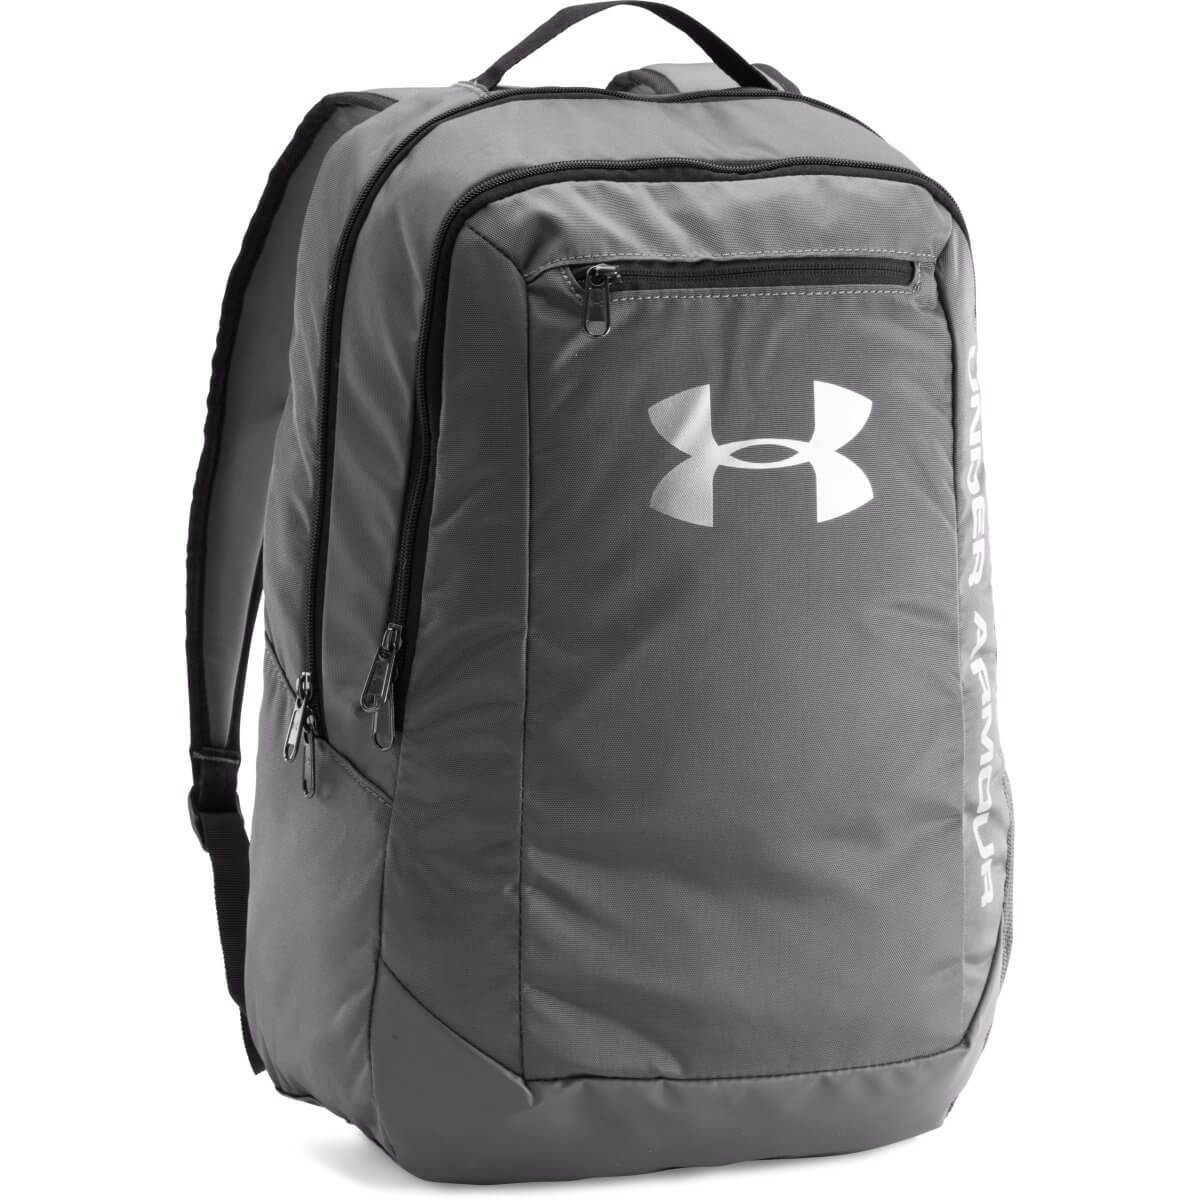 Hustle Backpack LDWR Grey - Under Armour - Grey